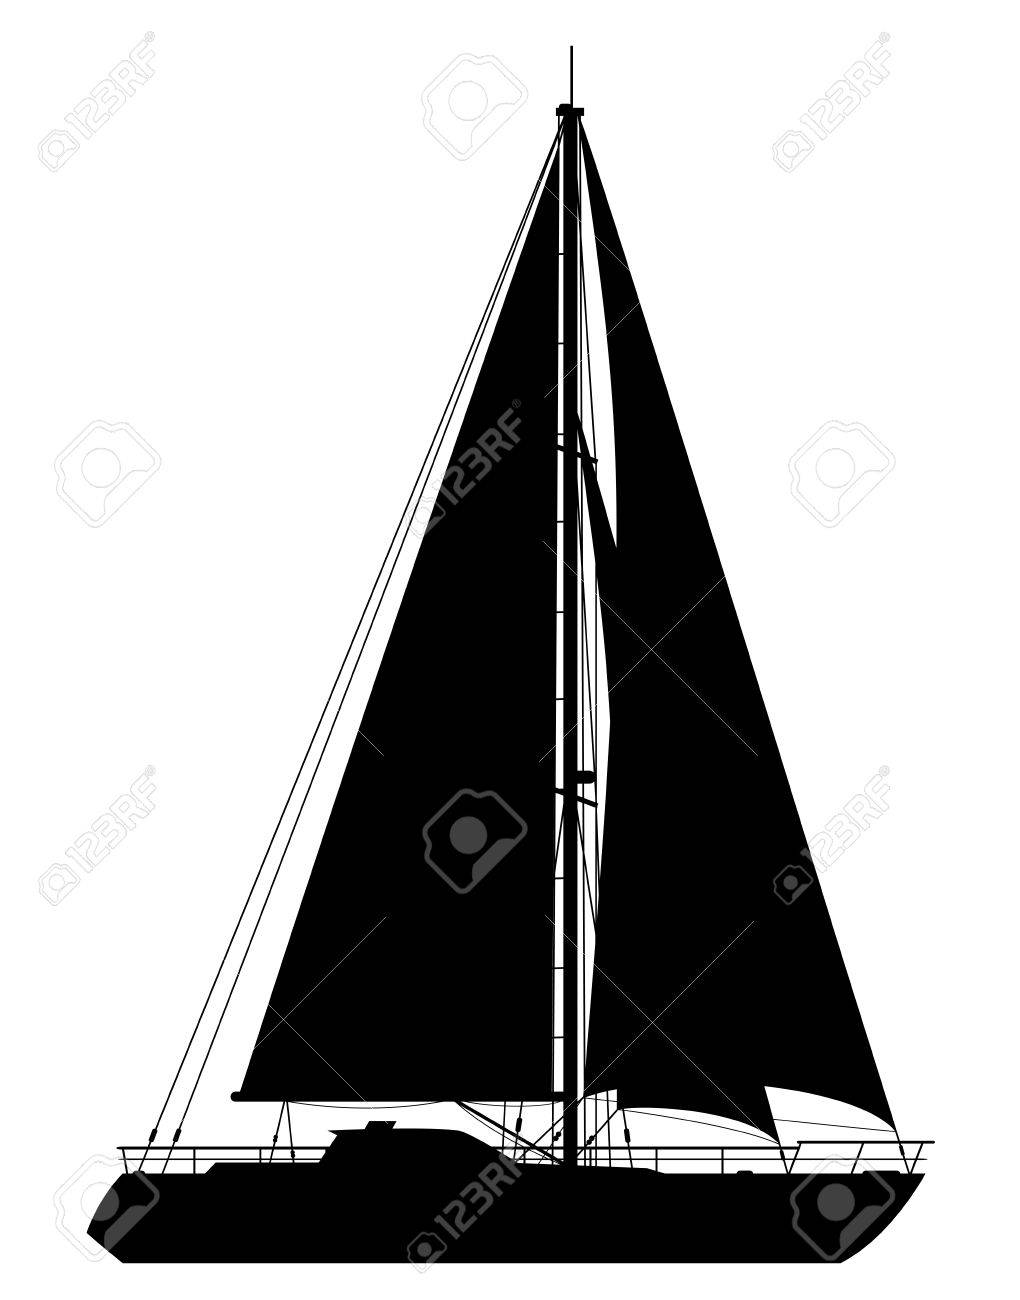 Yacht. Detailed vector illustration of black yacht isolated on white background. - 30936859